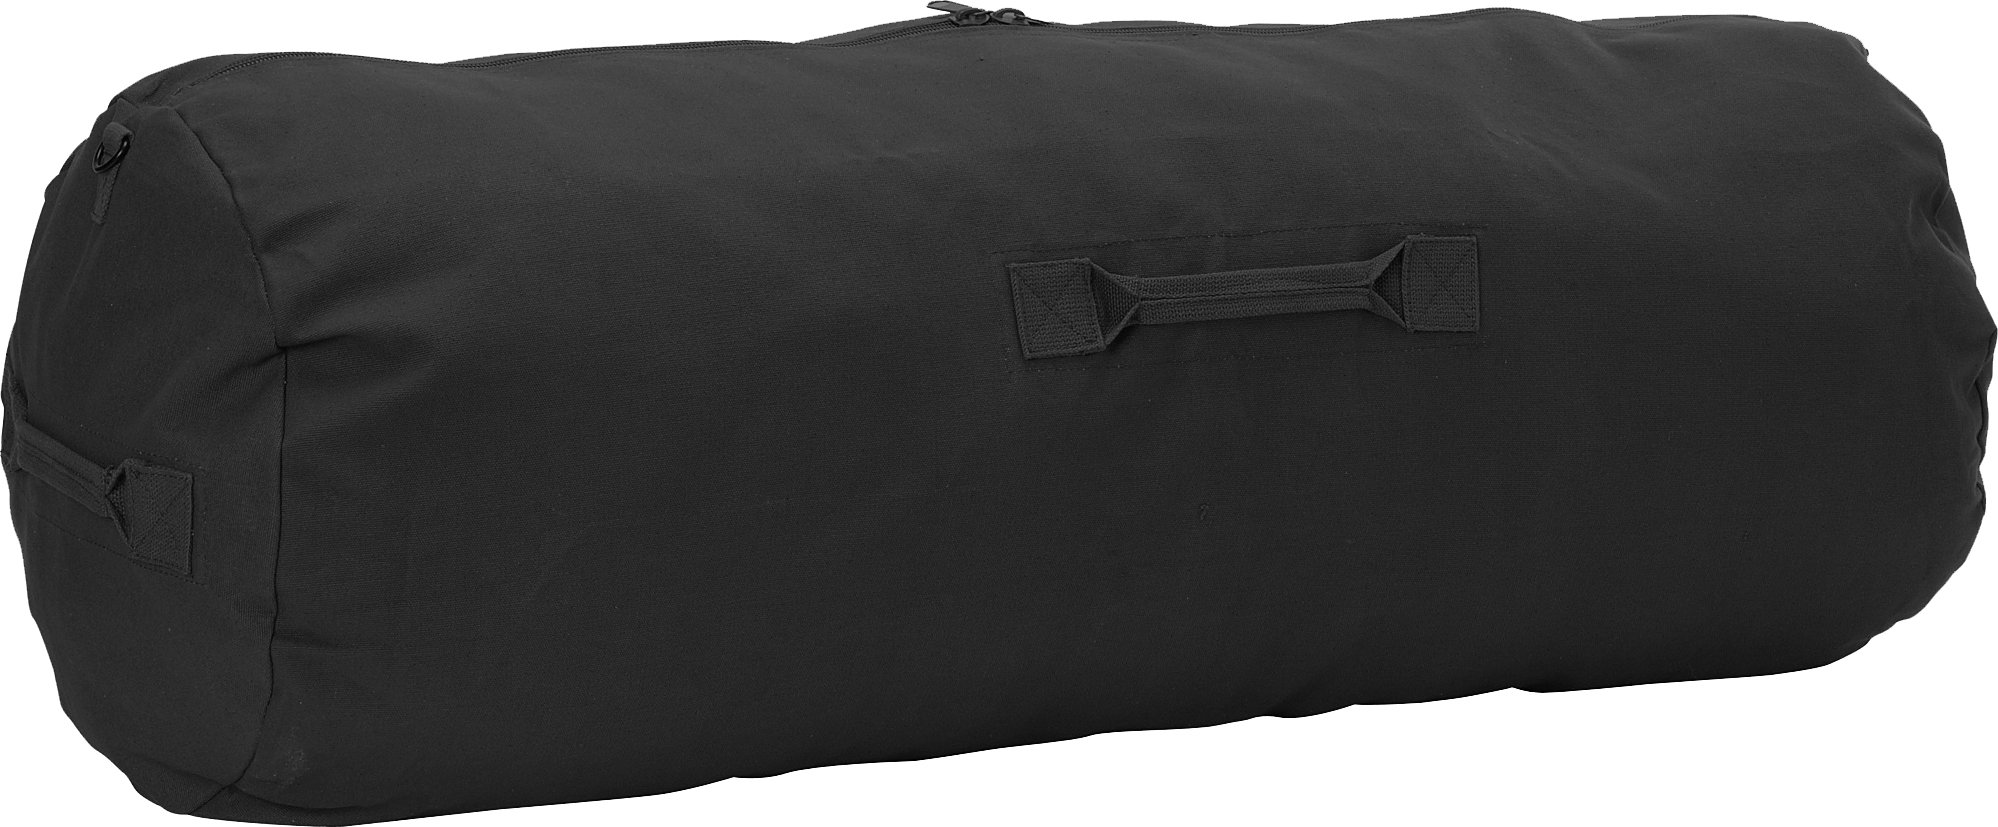 Black Giant Side Zipper Canvas Heavy Duty Military Duffle Bag (30'' x 50'')